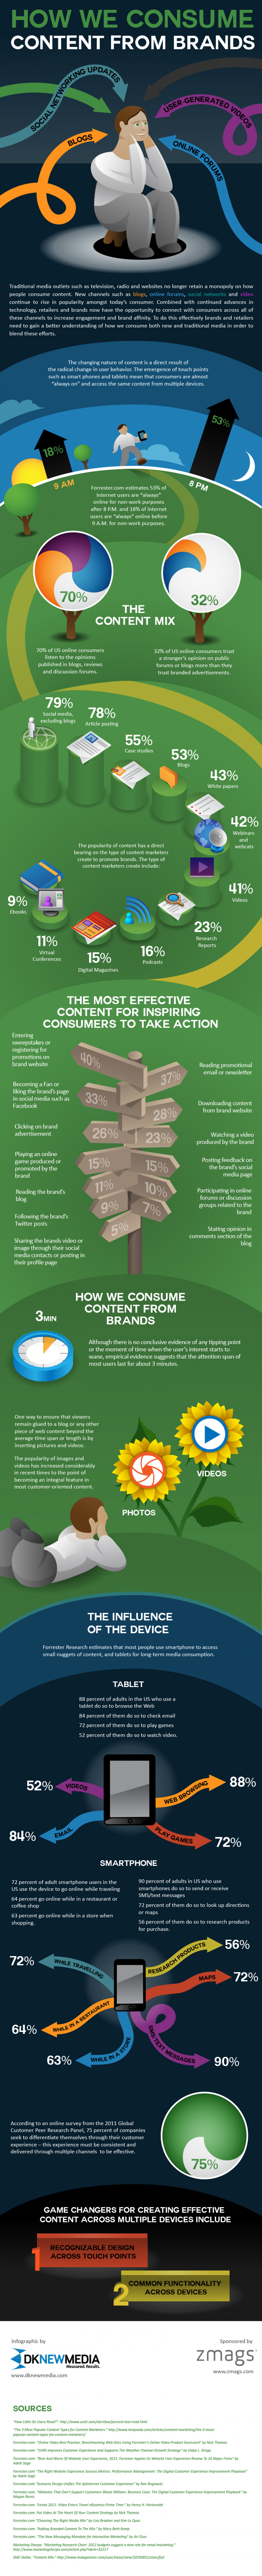 How We Consume Content from Brands Infographic